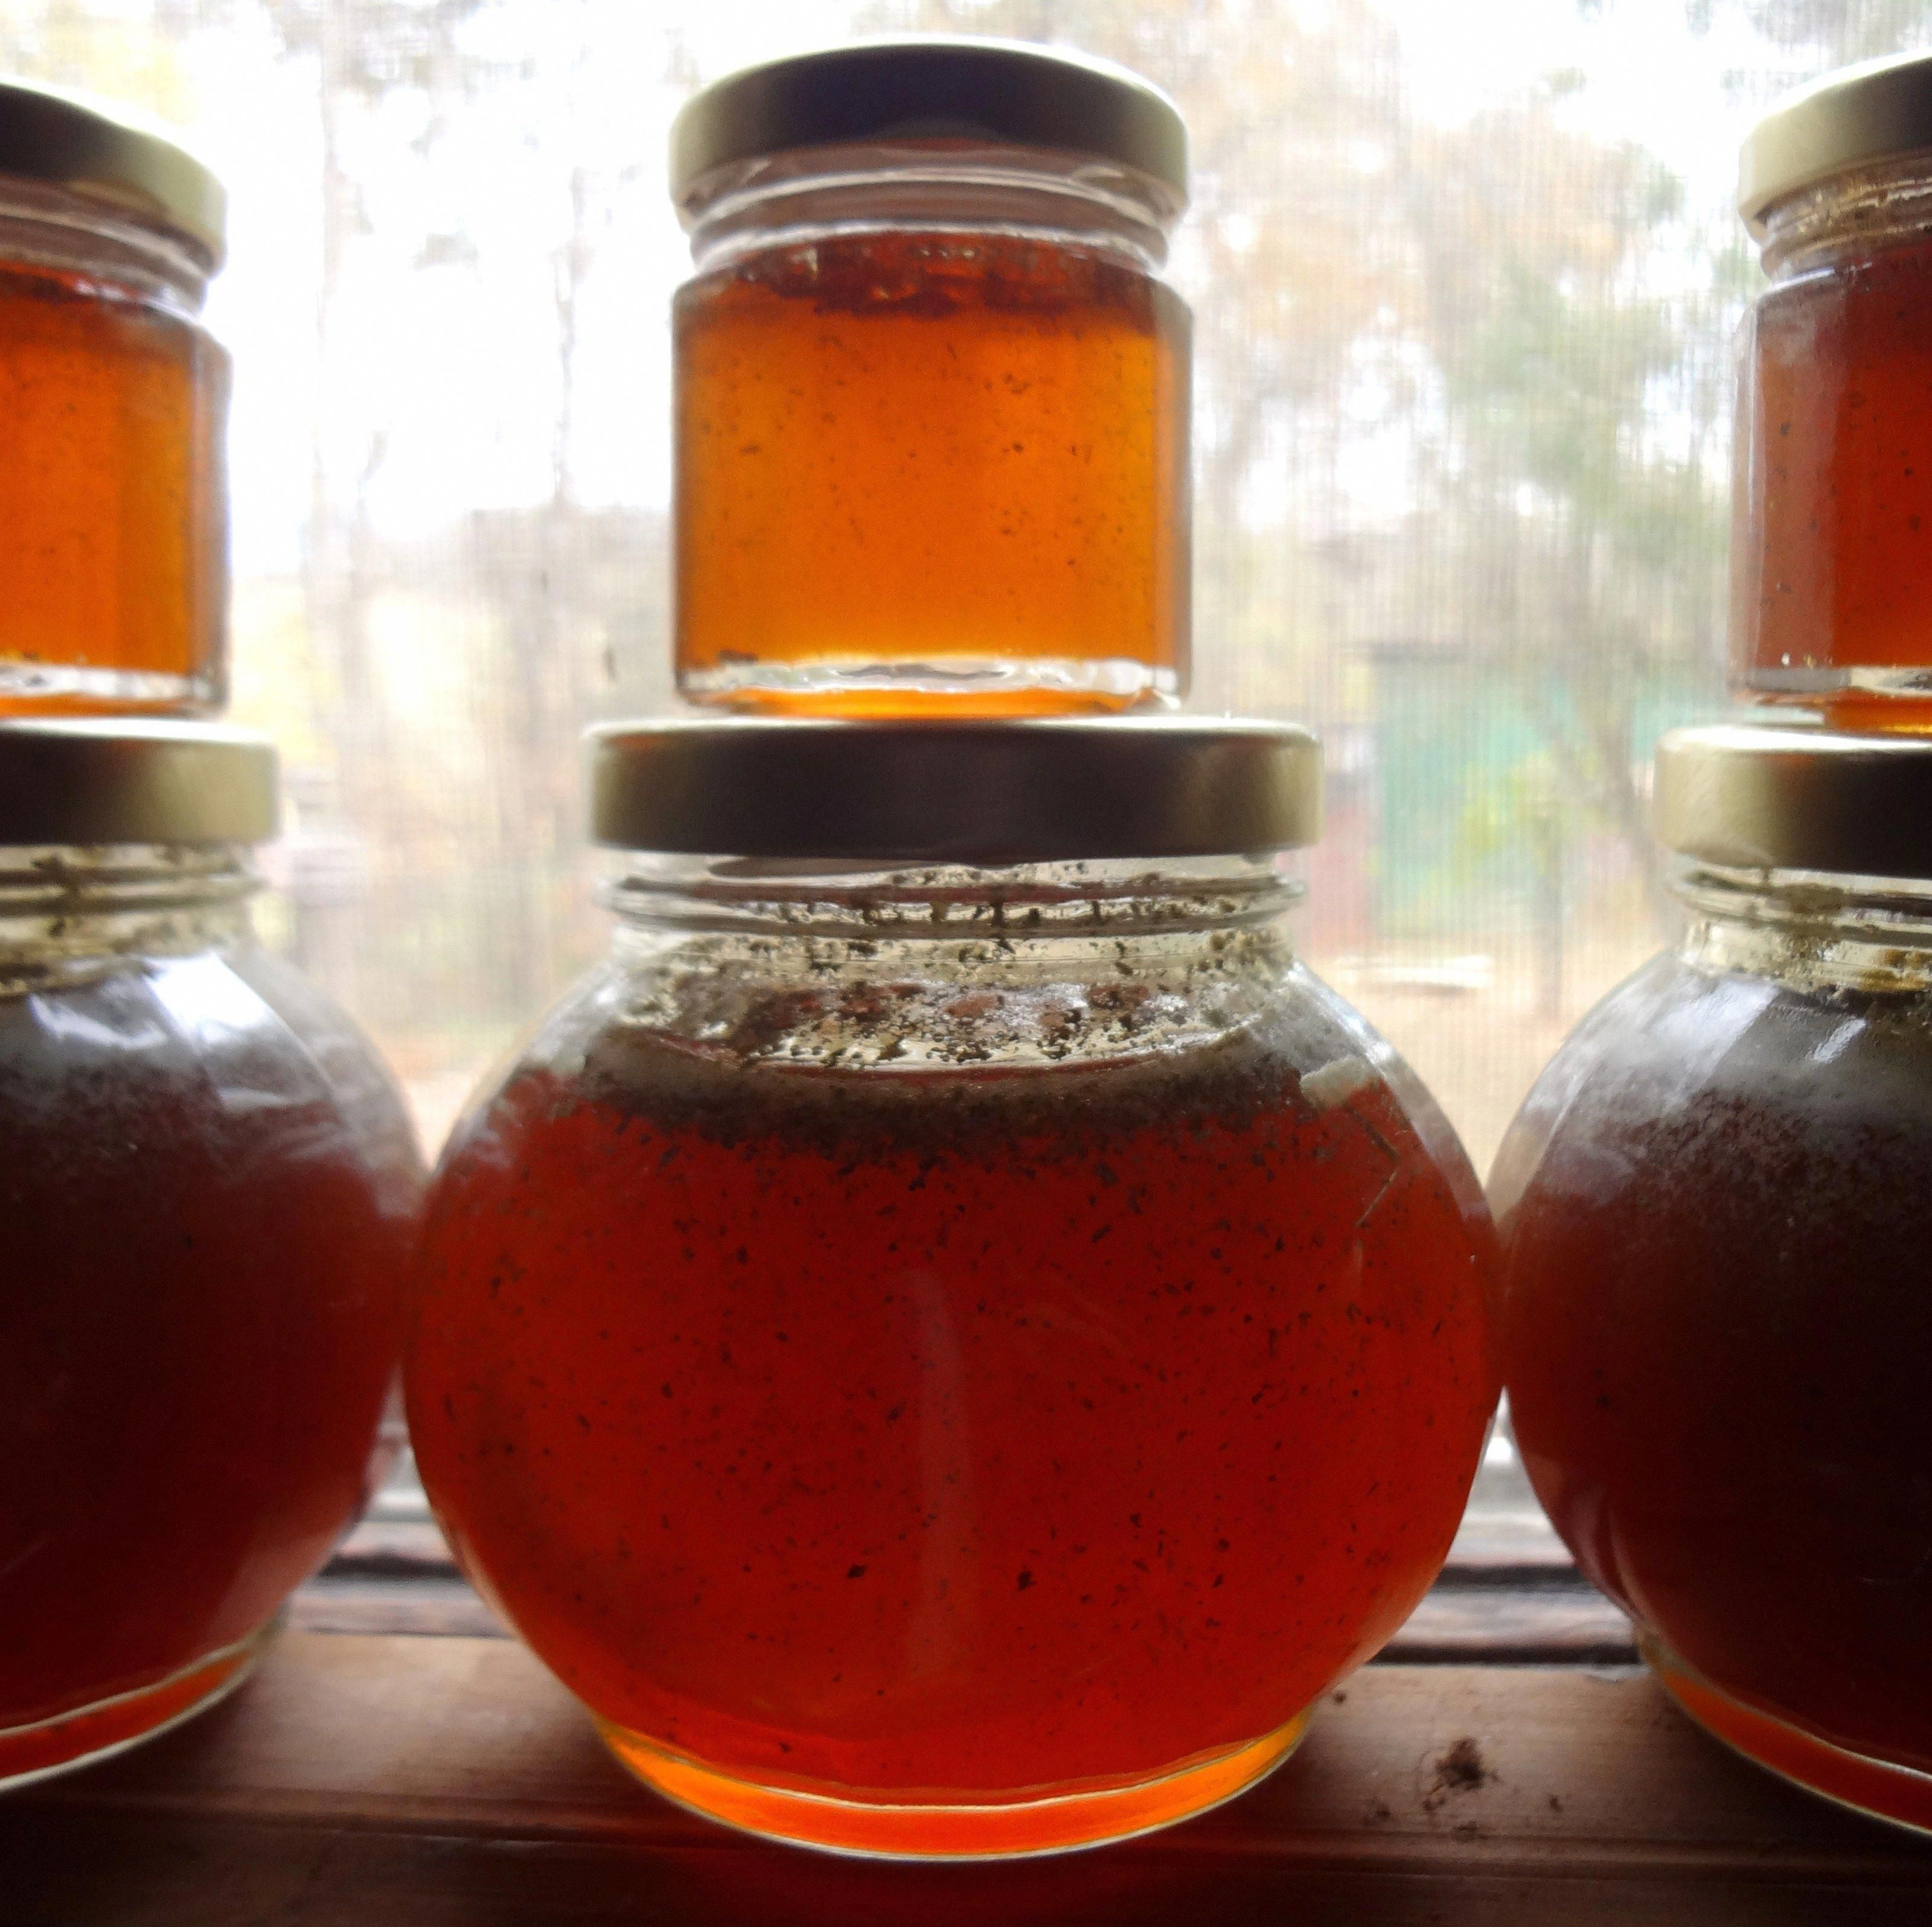 Pin By Naty On Naty Mead Recipe Mead Wine Recipes Home Brewing